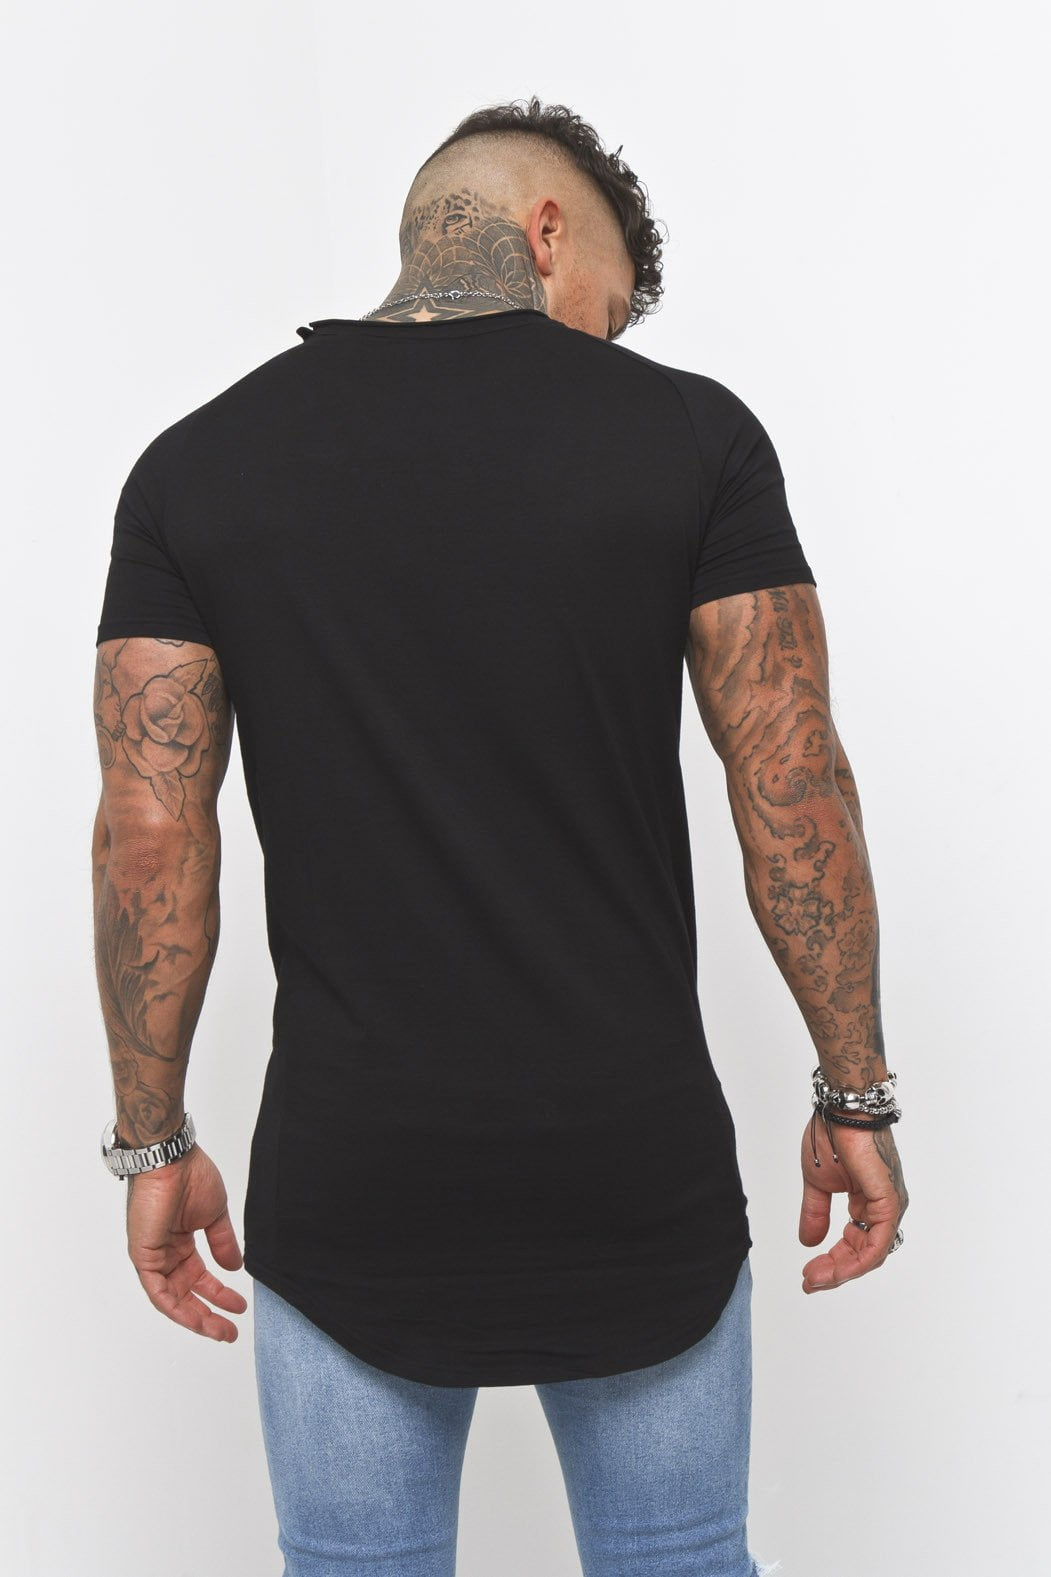 Liquor n Poker - Muscle fit t shirt in black - Liquor N Poker  Liquor N Poker